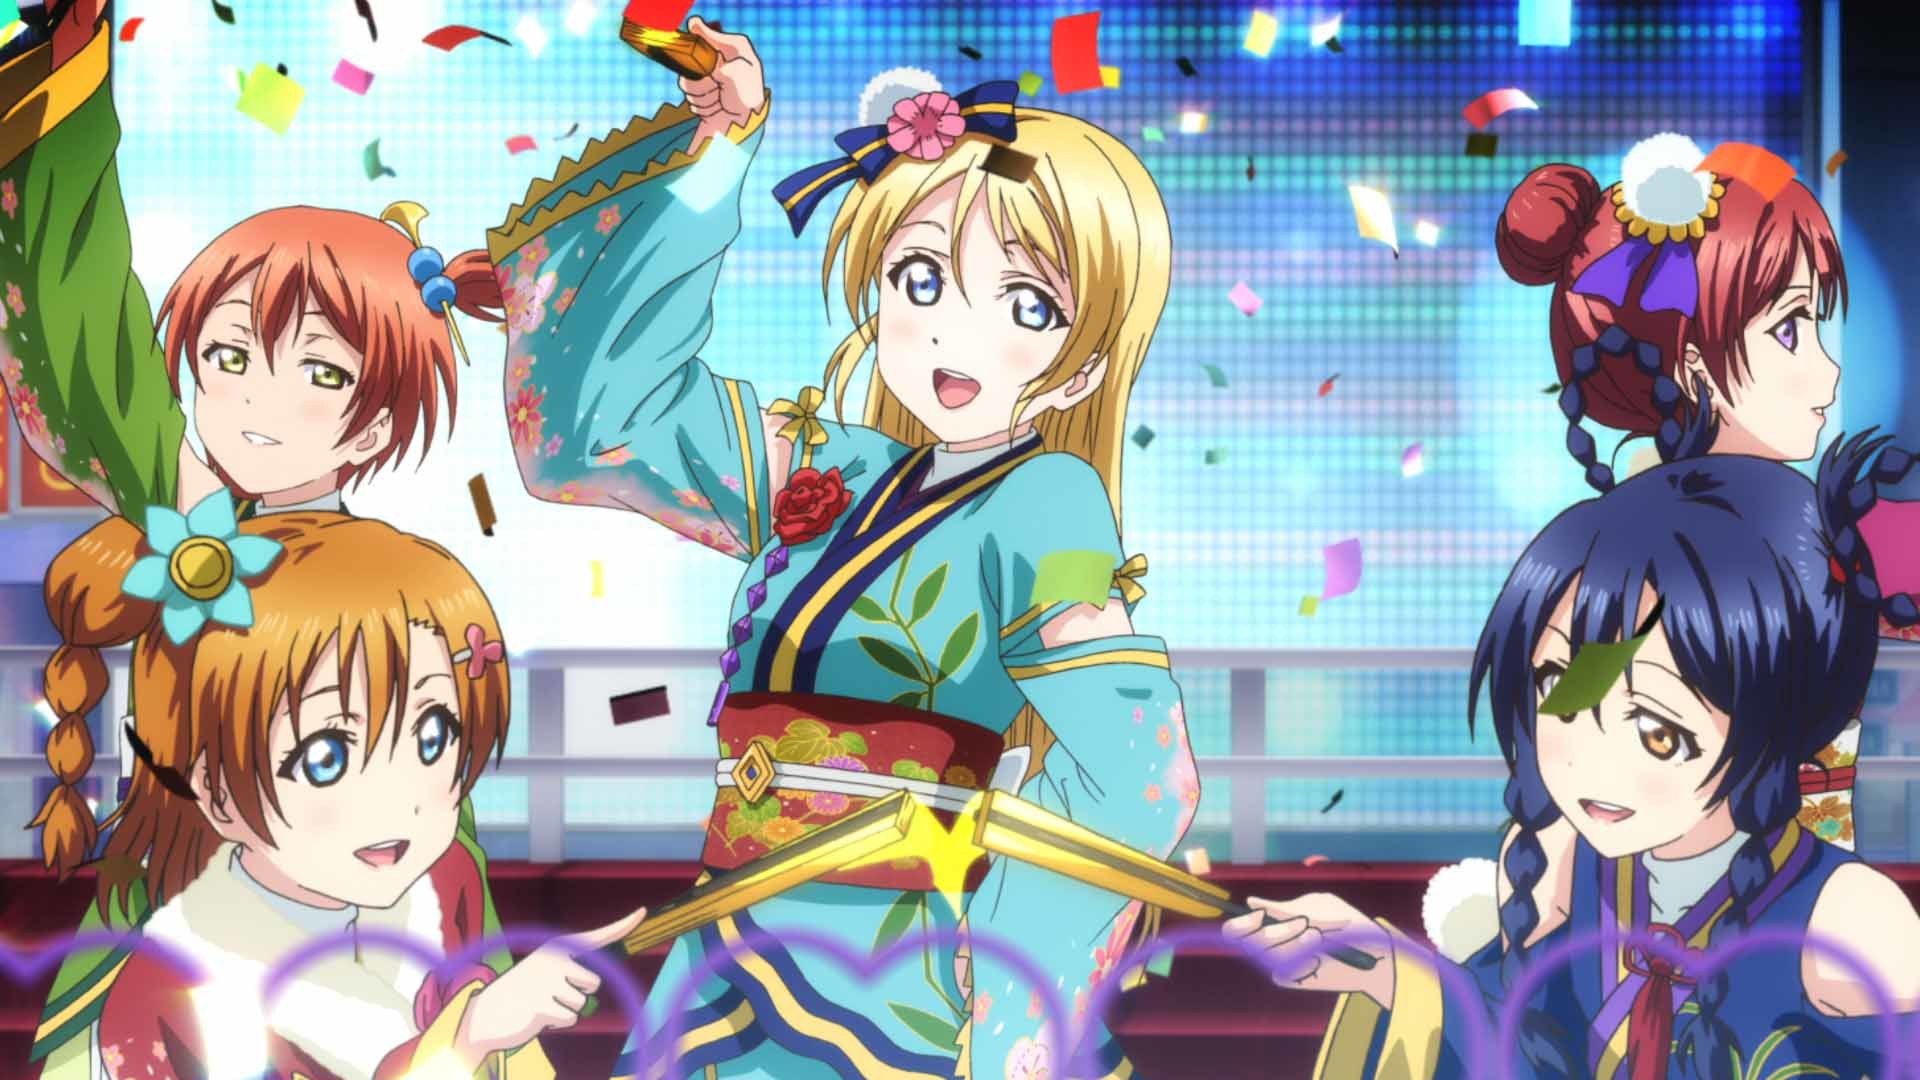 Res: 1920x1080, Nice wallpapers Love Live! px